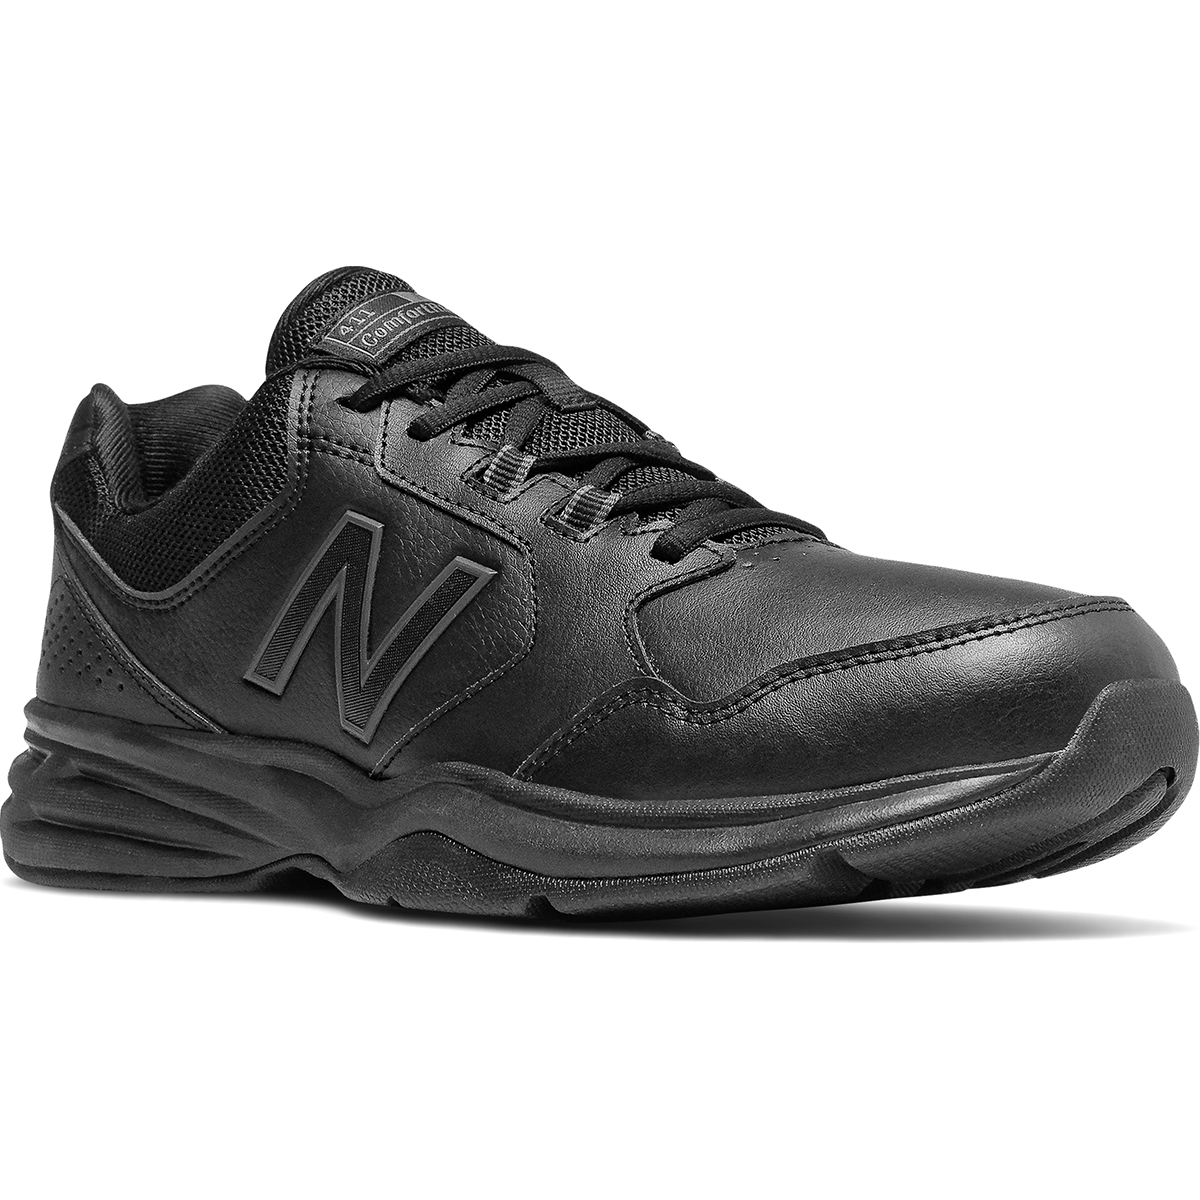 New Balance Men's 411 Walking Shoes - Black, 8